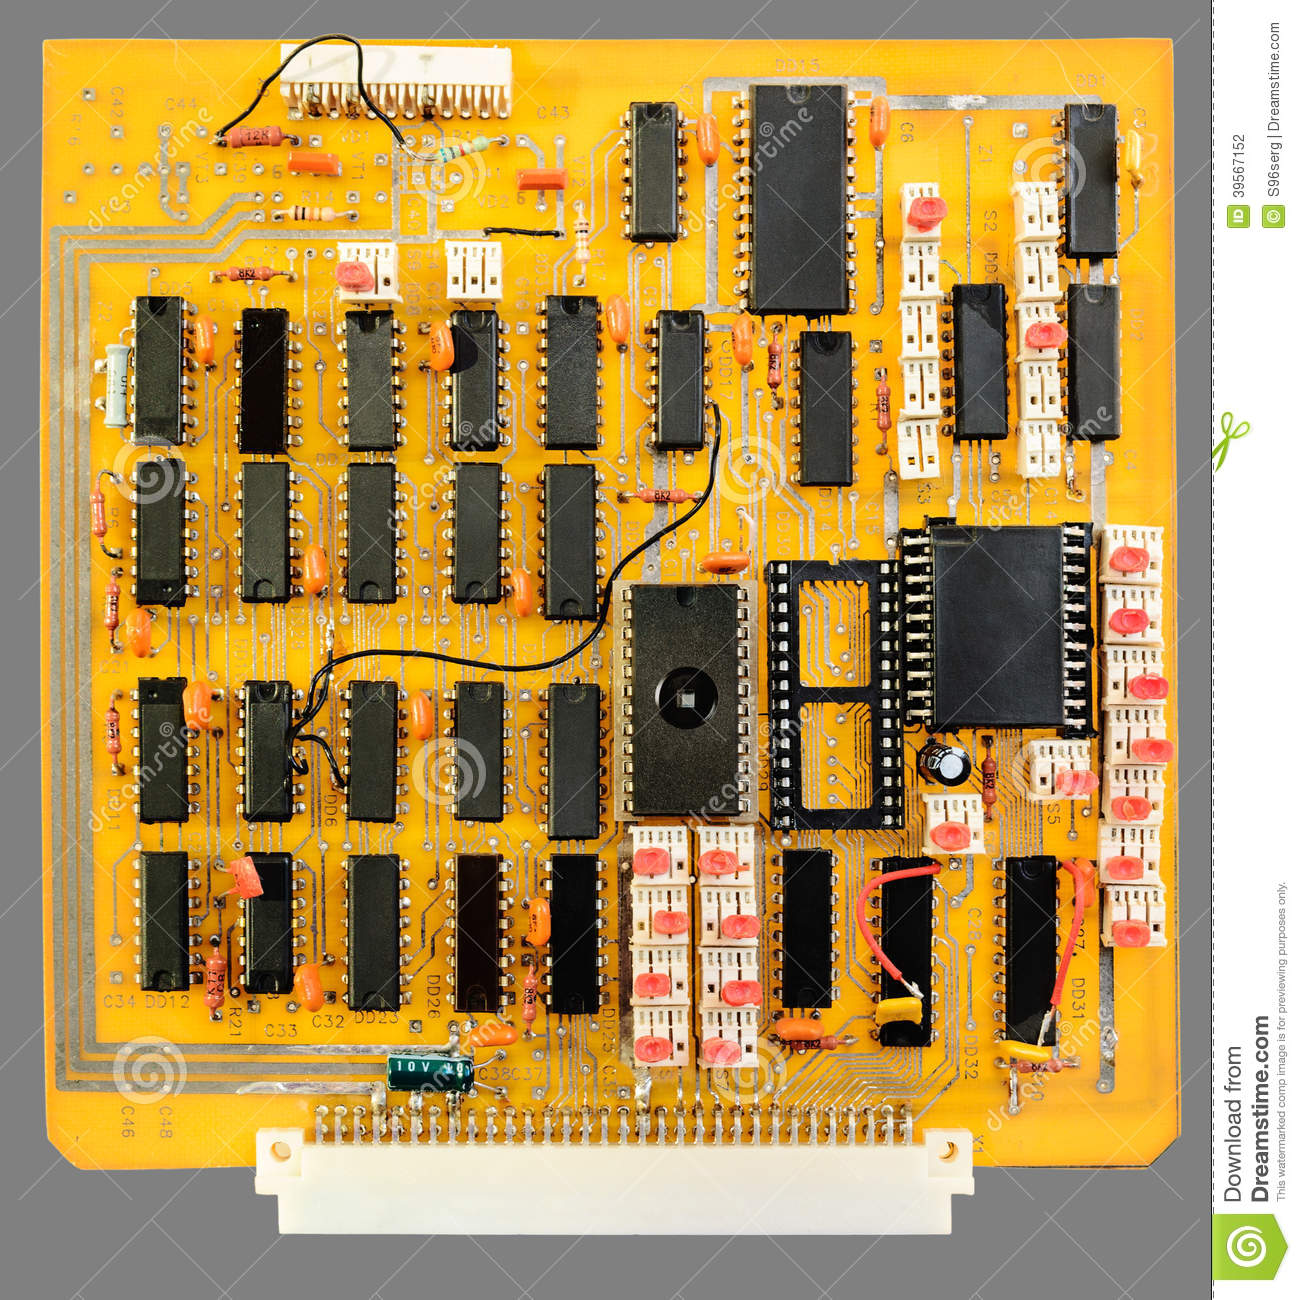 Printed Circuit Board Stock Photo Image Of 39567152 Stockfoto Pcb Used In Industrial Electronic Download